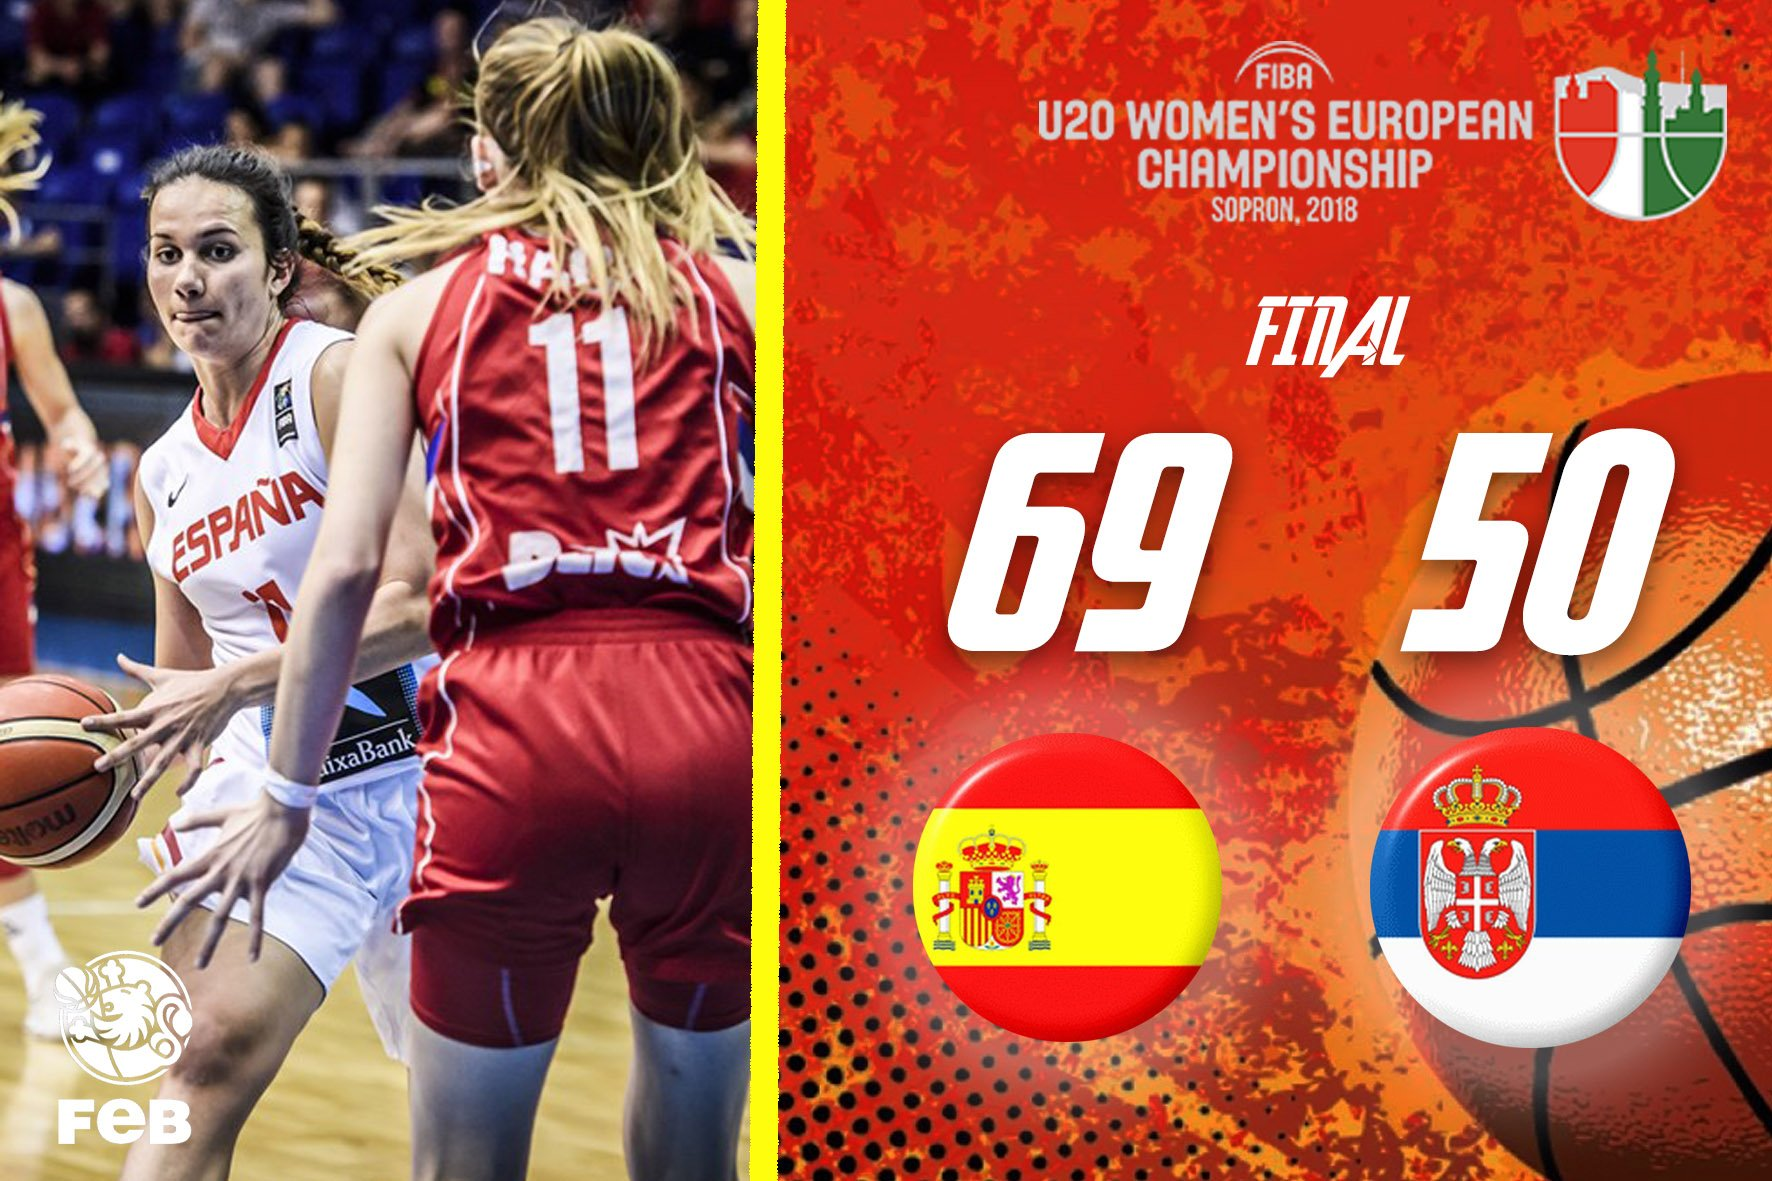 ��¡CAMPEONAS de Europa!��   #FIBAU20Europe  FINAL | #U20F  ���������� �� https://t.co/y5FnaavKRk  #SomosEquipo https://t.co/Xnyxk1Wqkc